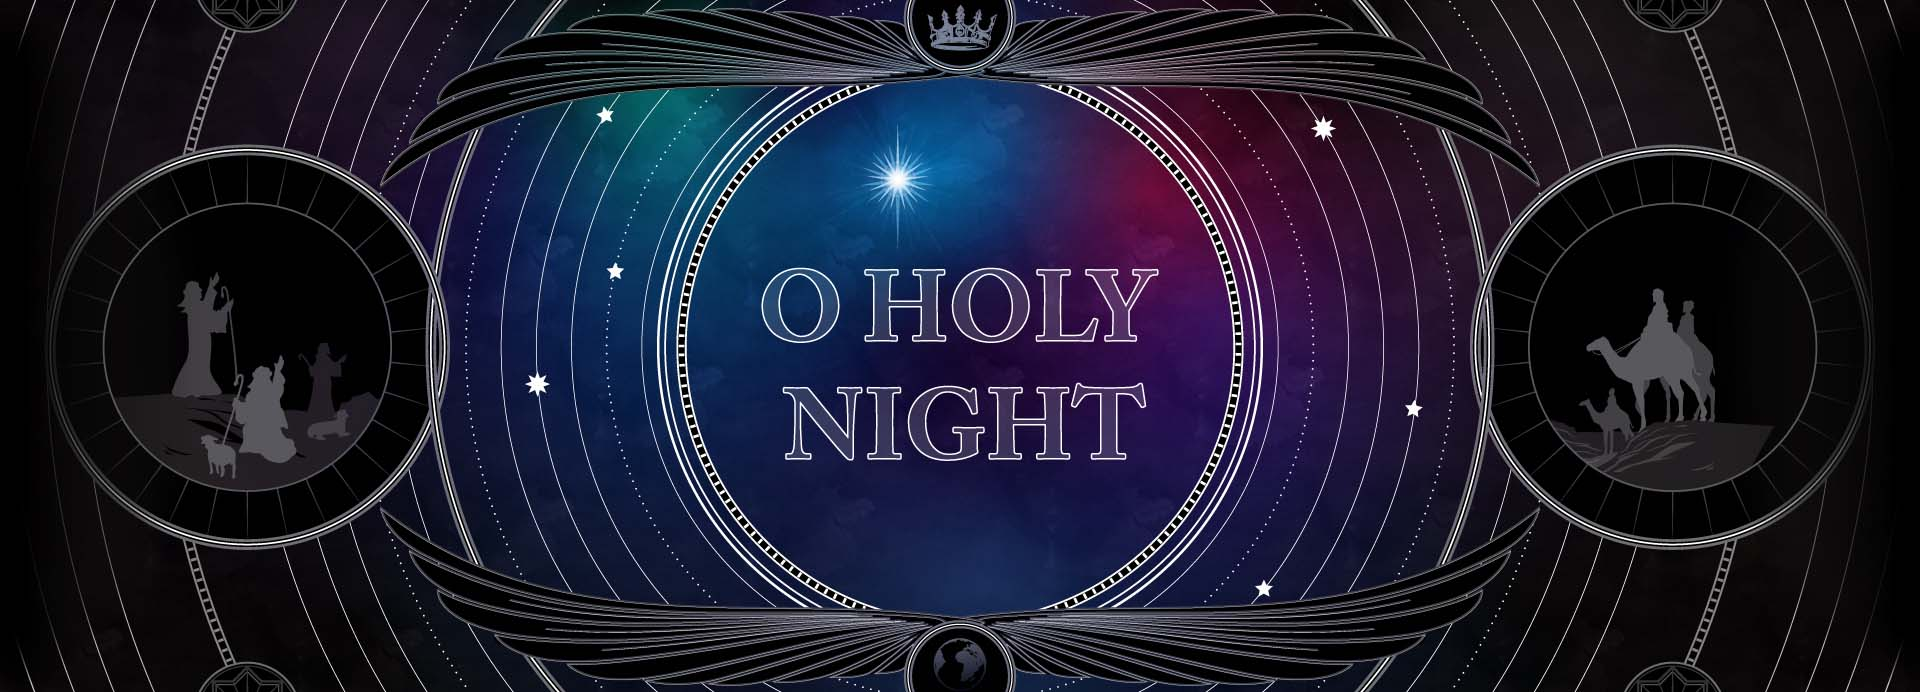 O Holy Night – Week 3 – And In His Name